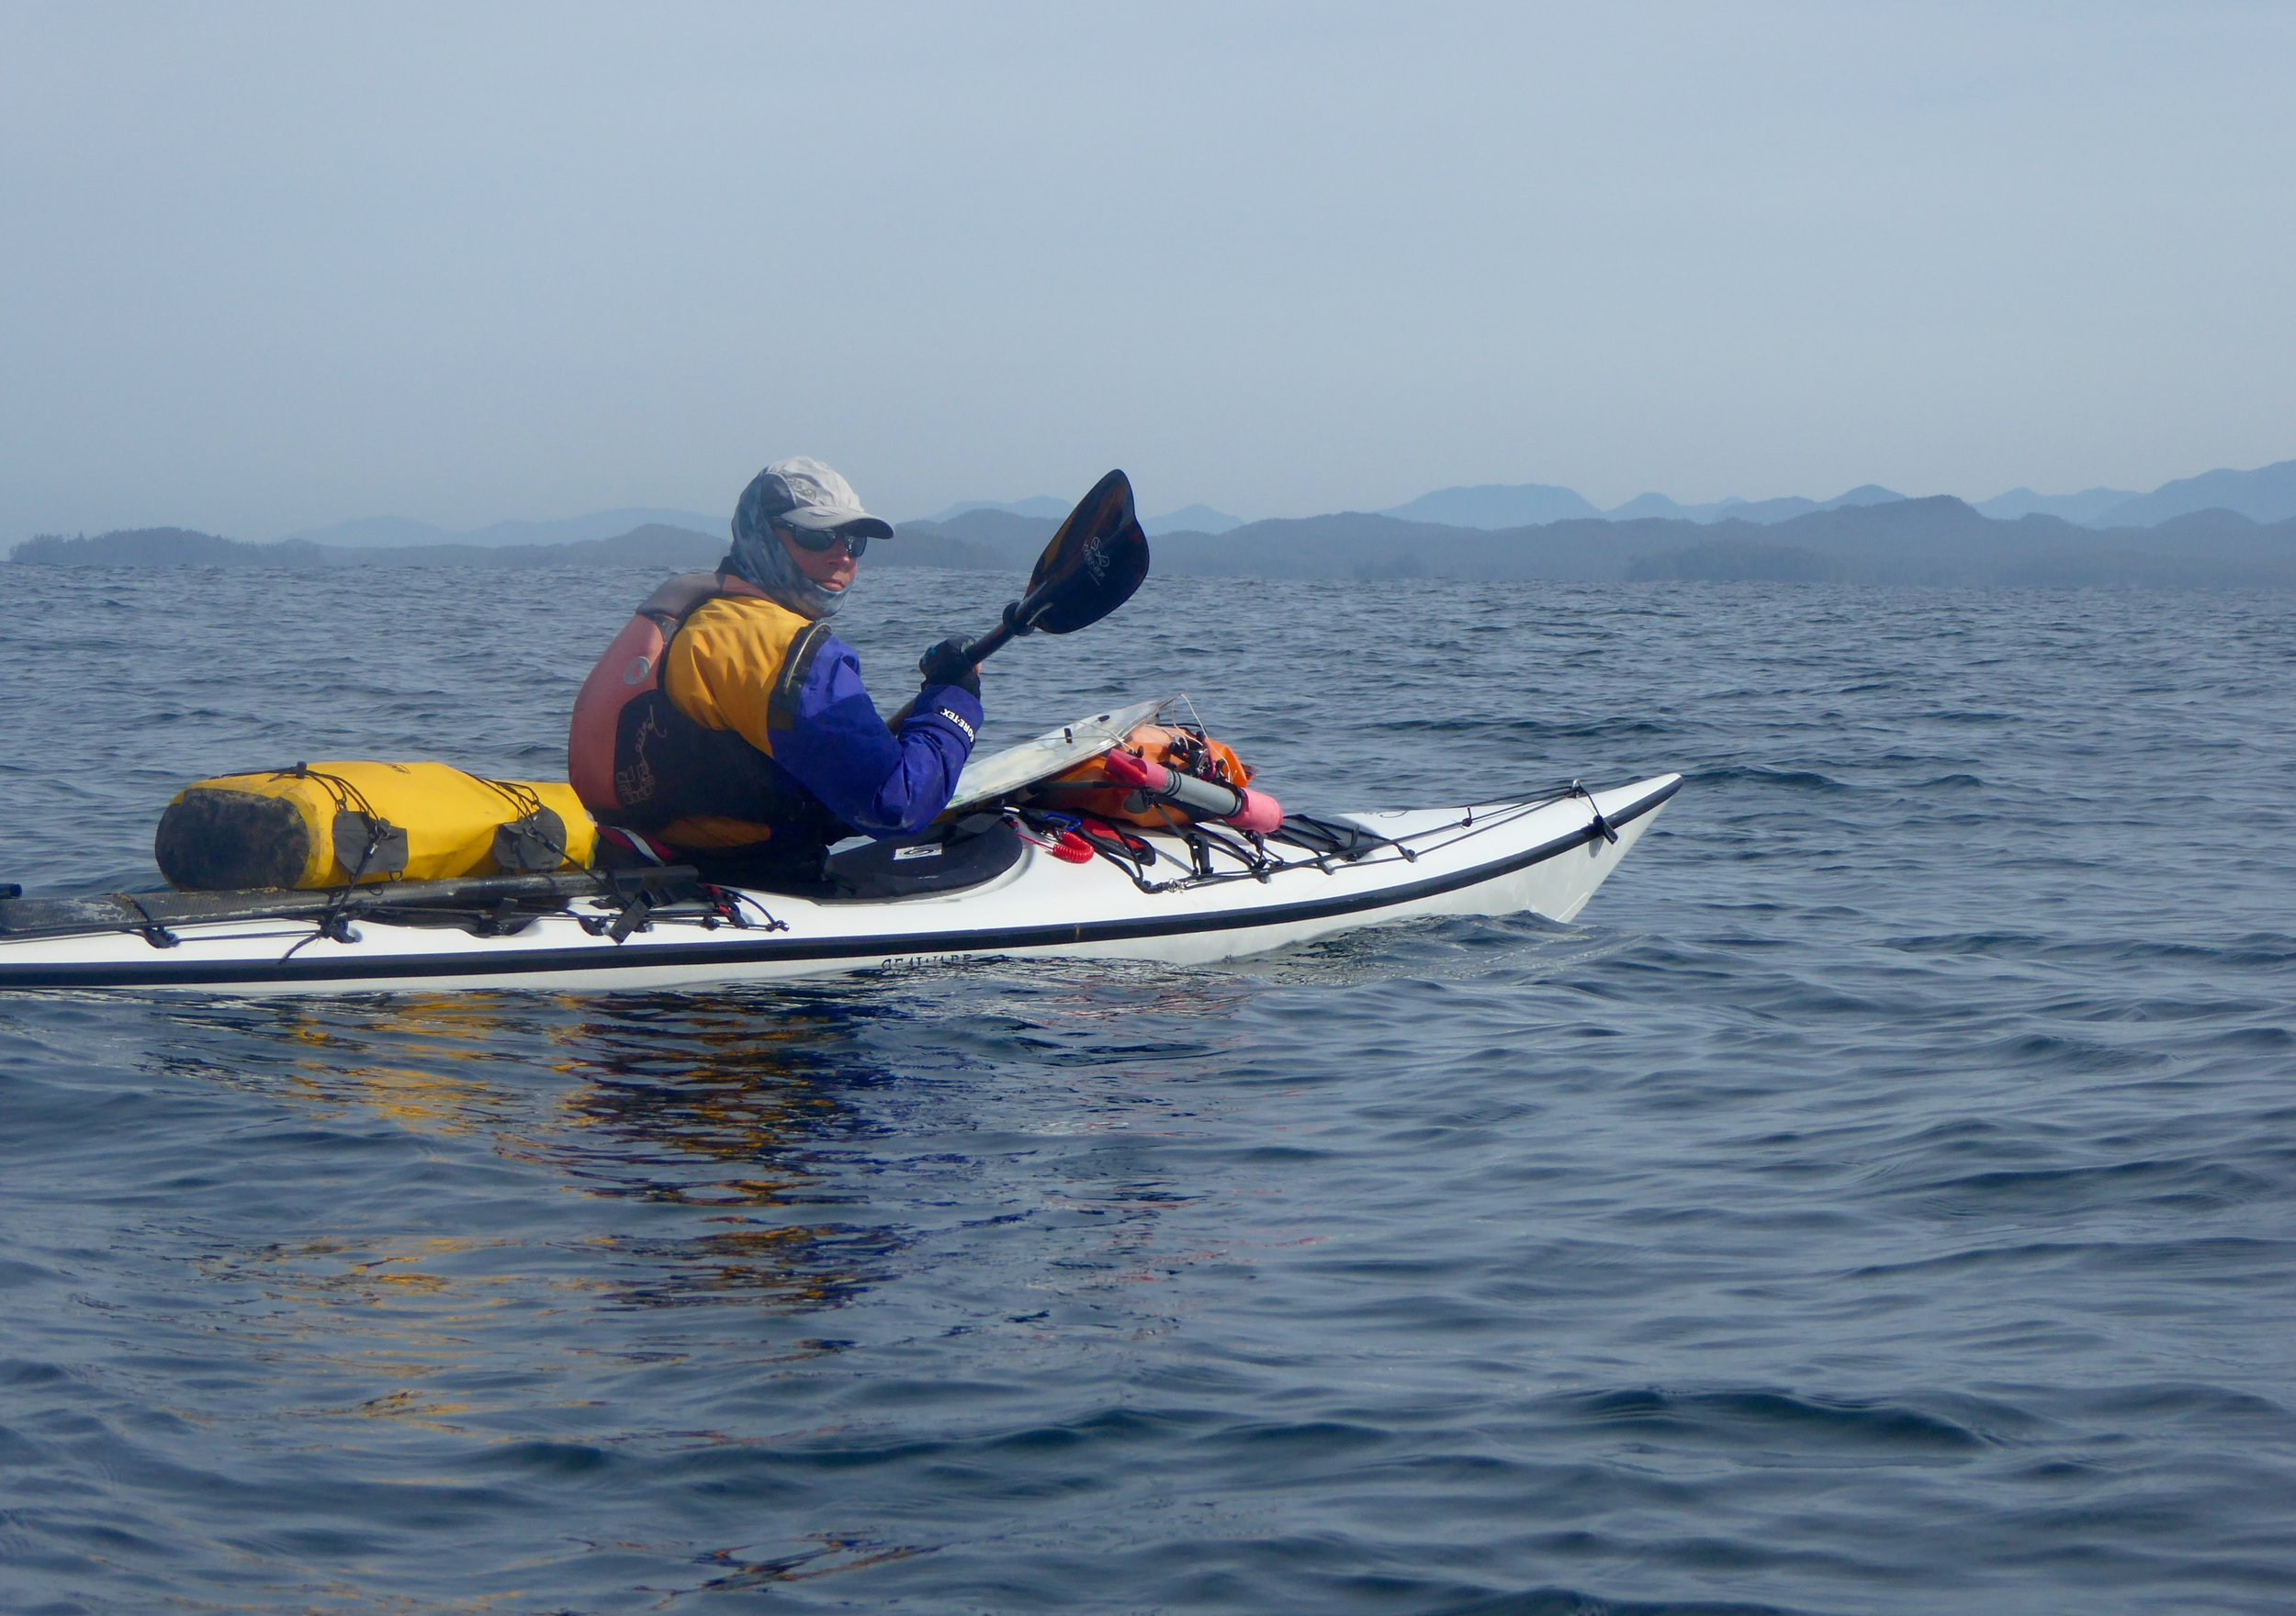 Once rounding the point we paddled steadily till reaching a more protected larger bay.